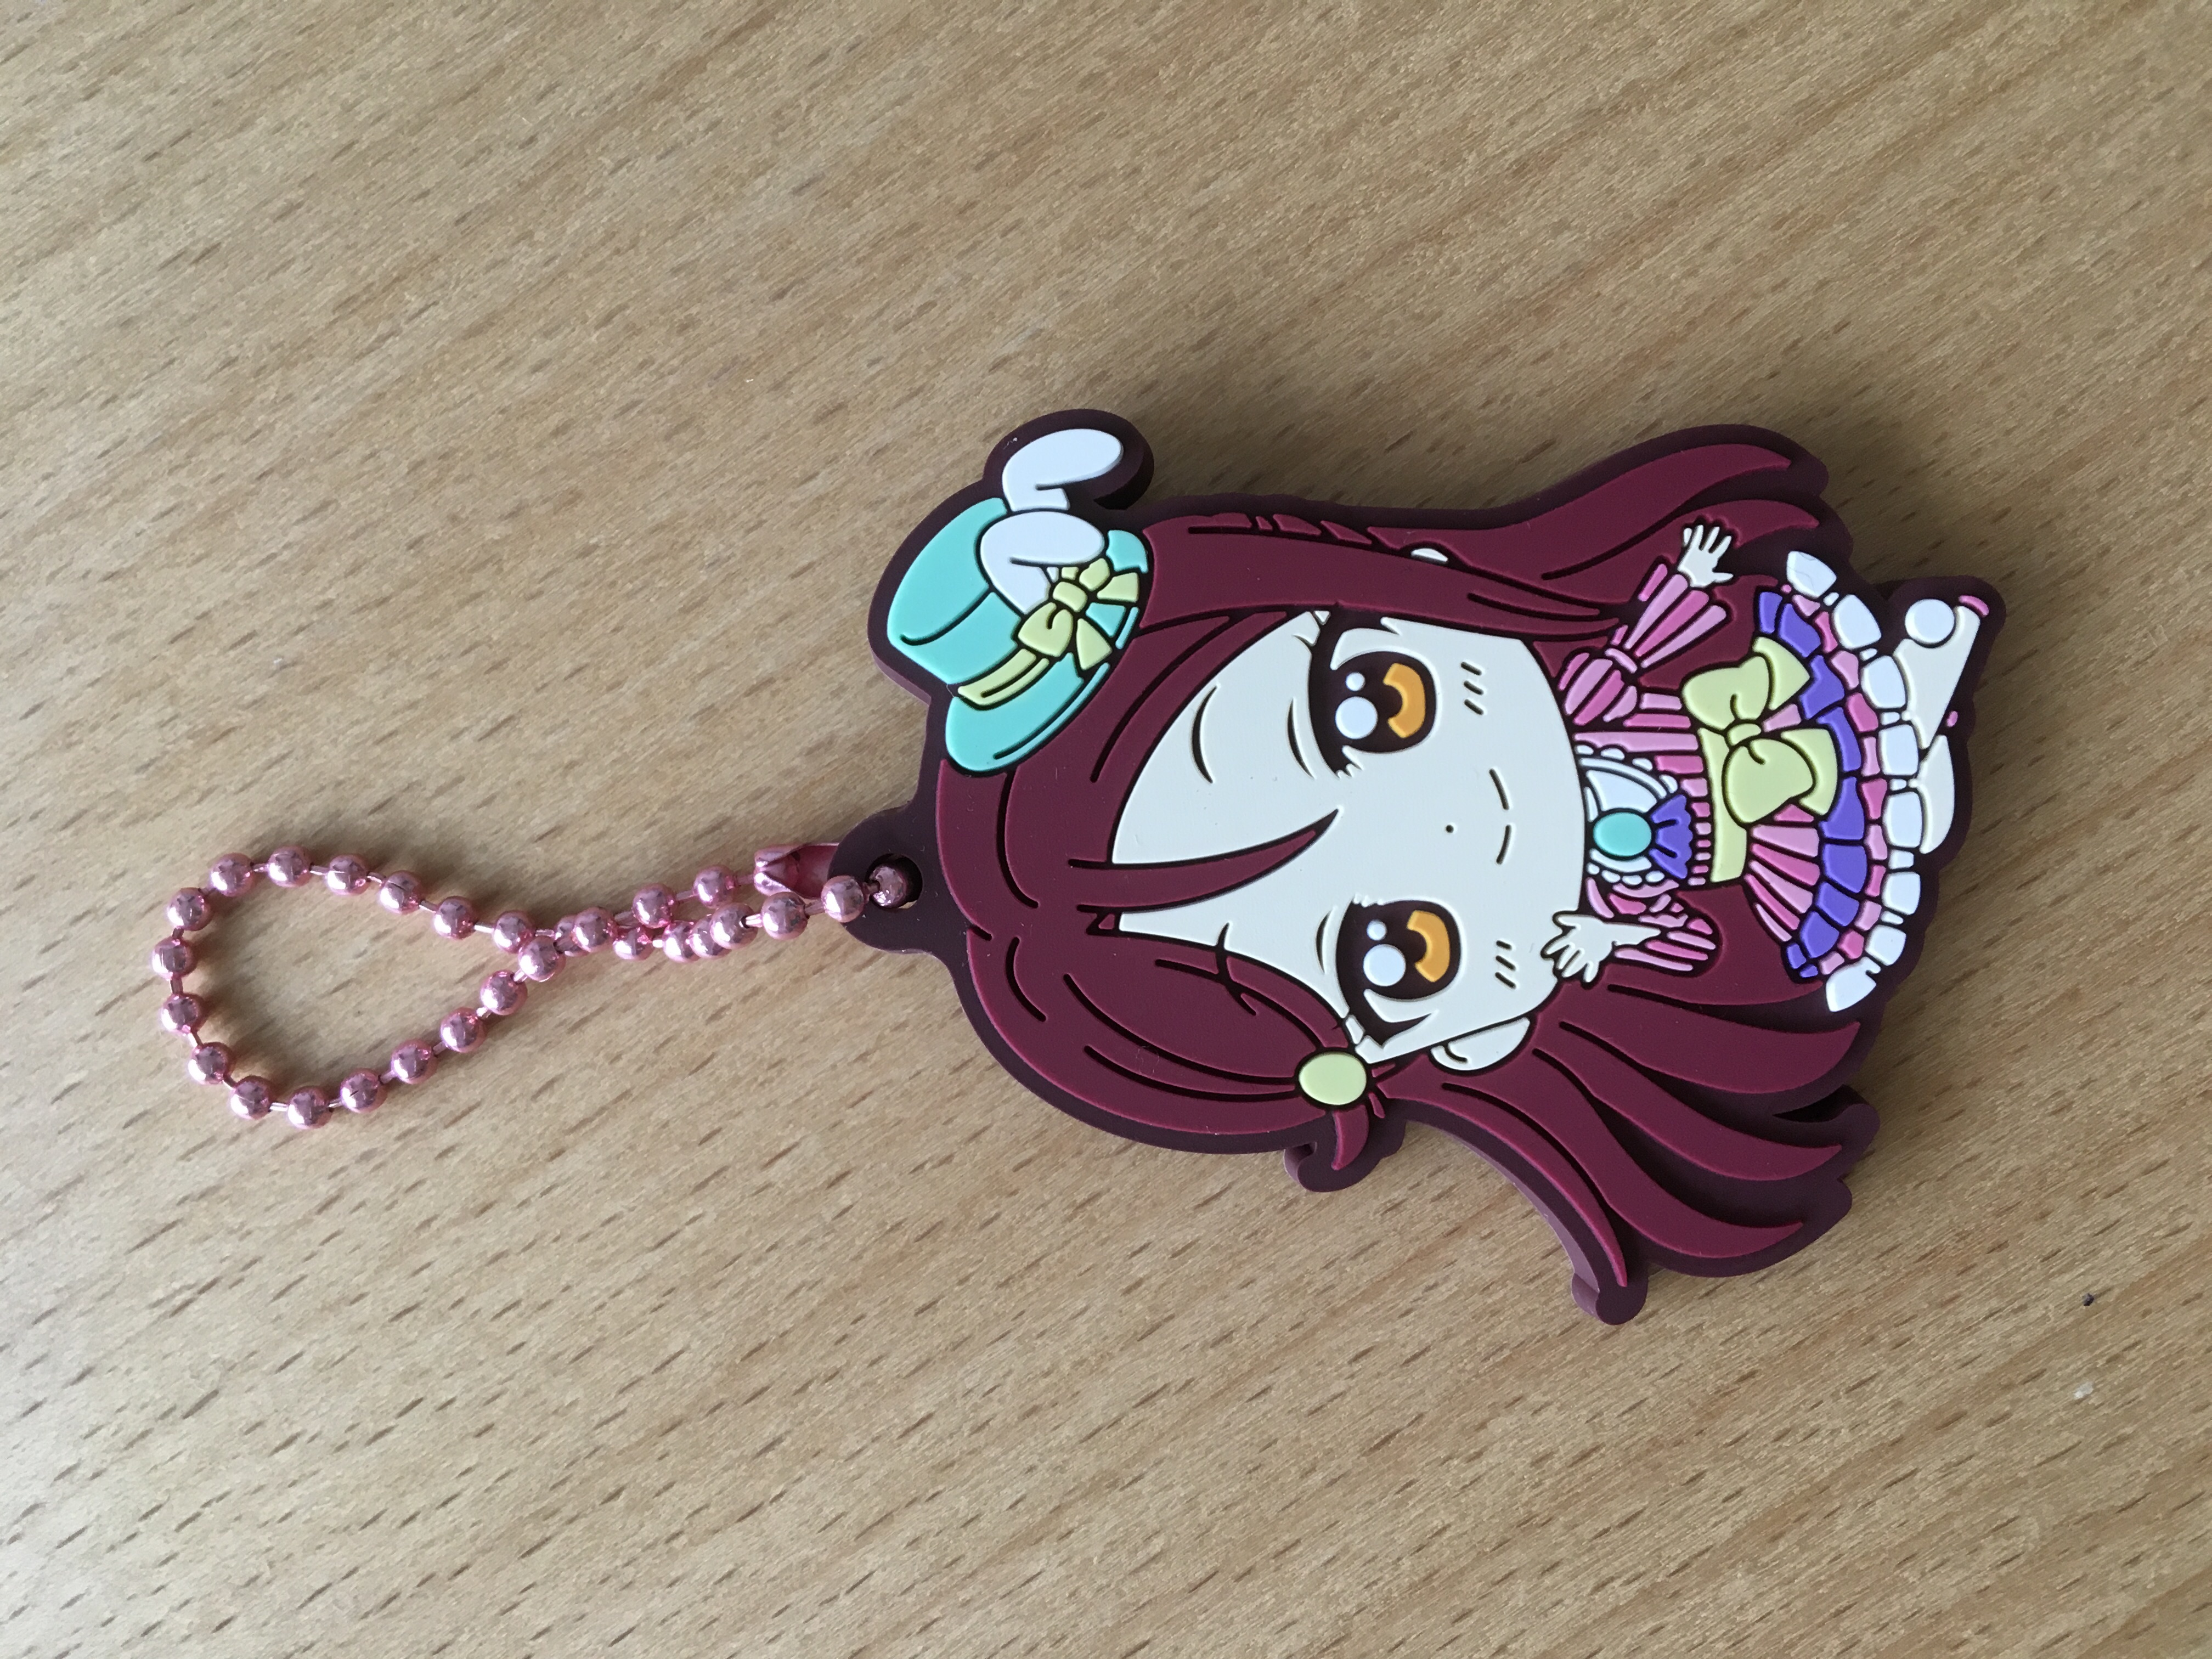 Easter rubber strap (also known as Alice in Wonderland)